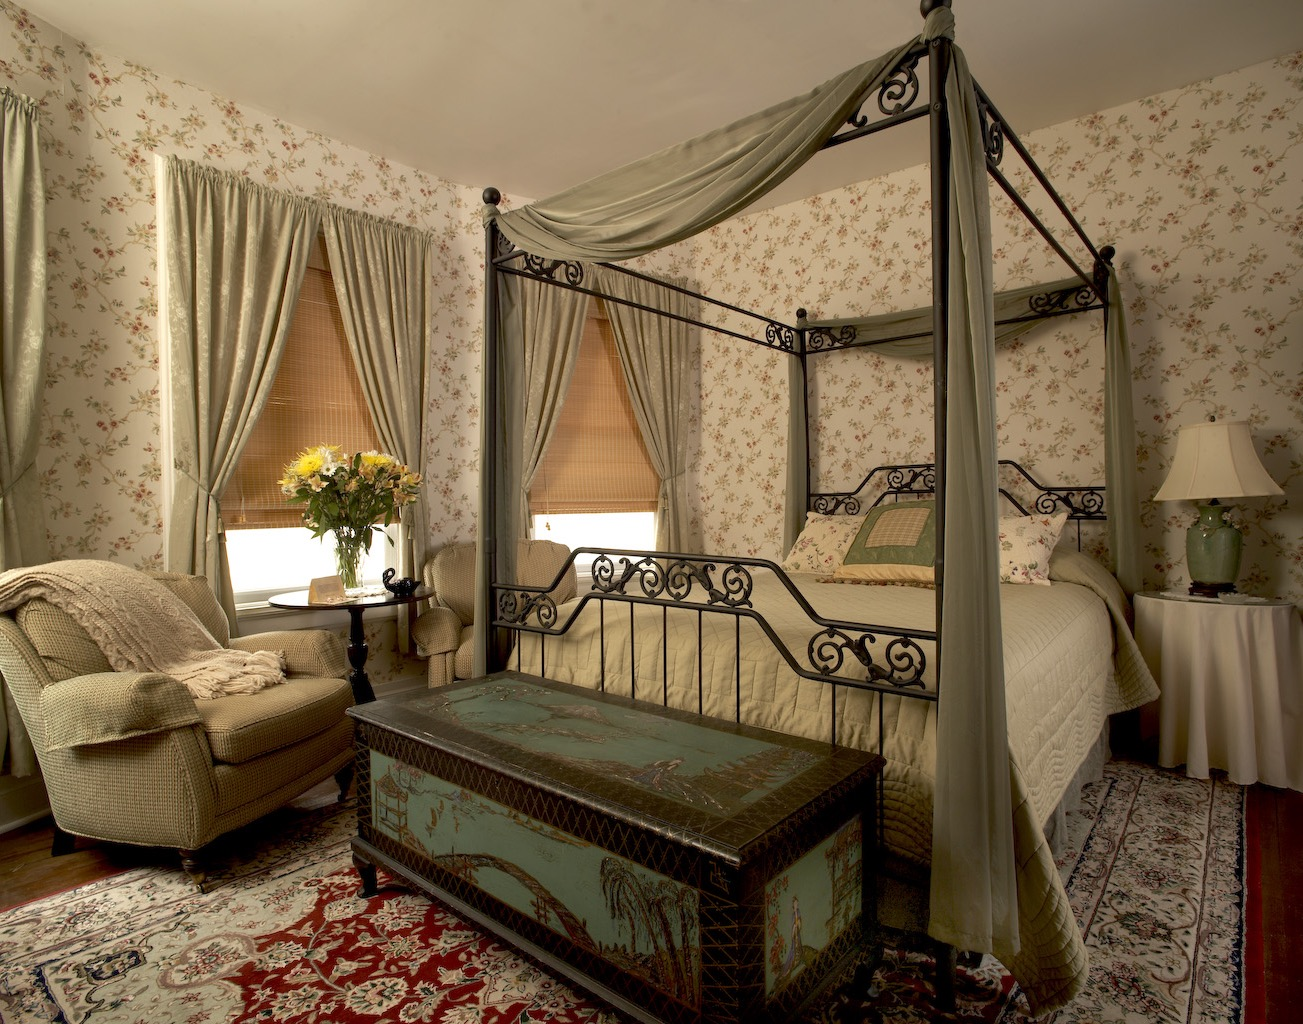 Victorian Decor Style For Comfortable Bedroom #15485 ... on Comfortable Bedroom Ideas  id=45674